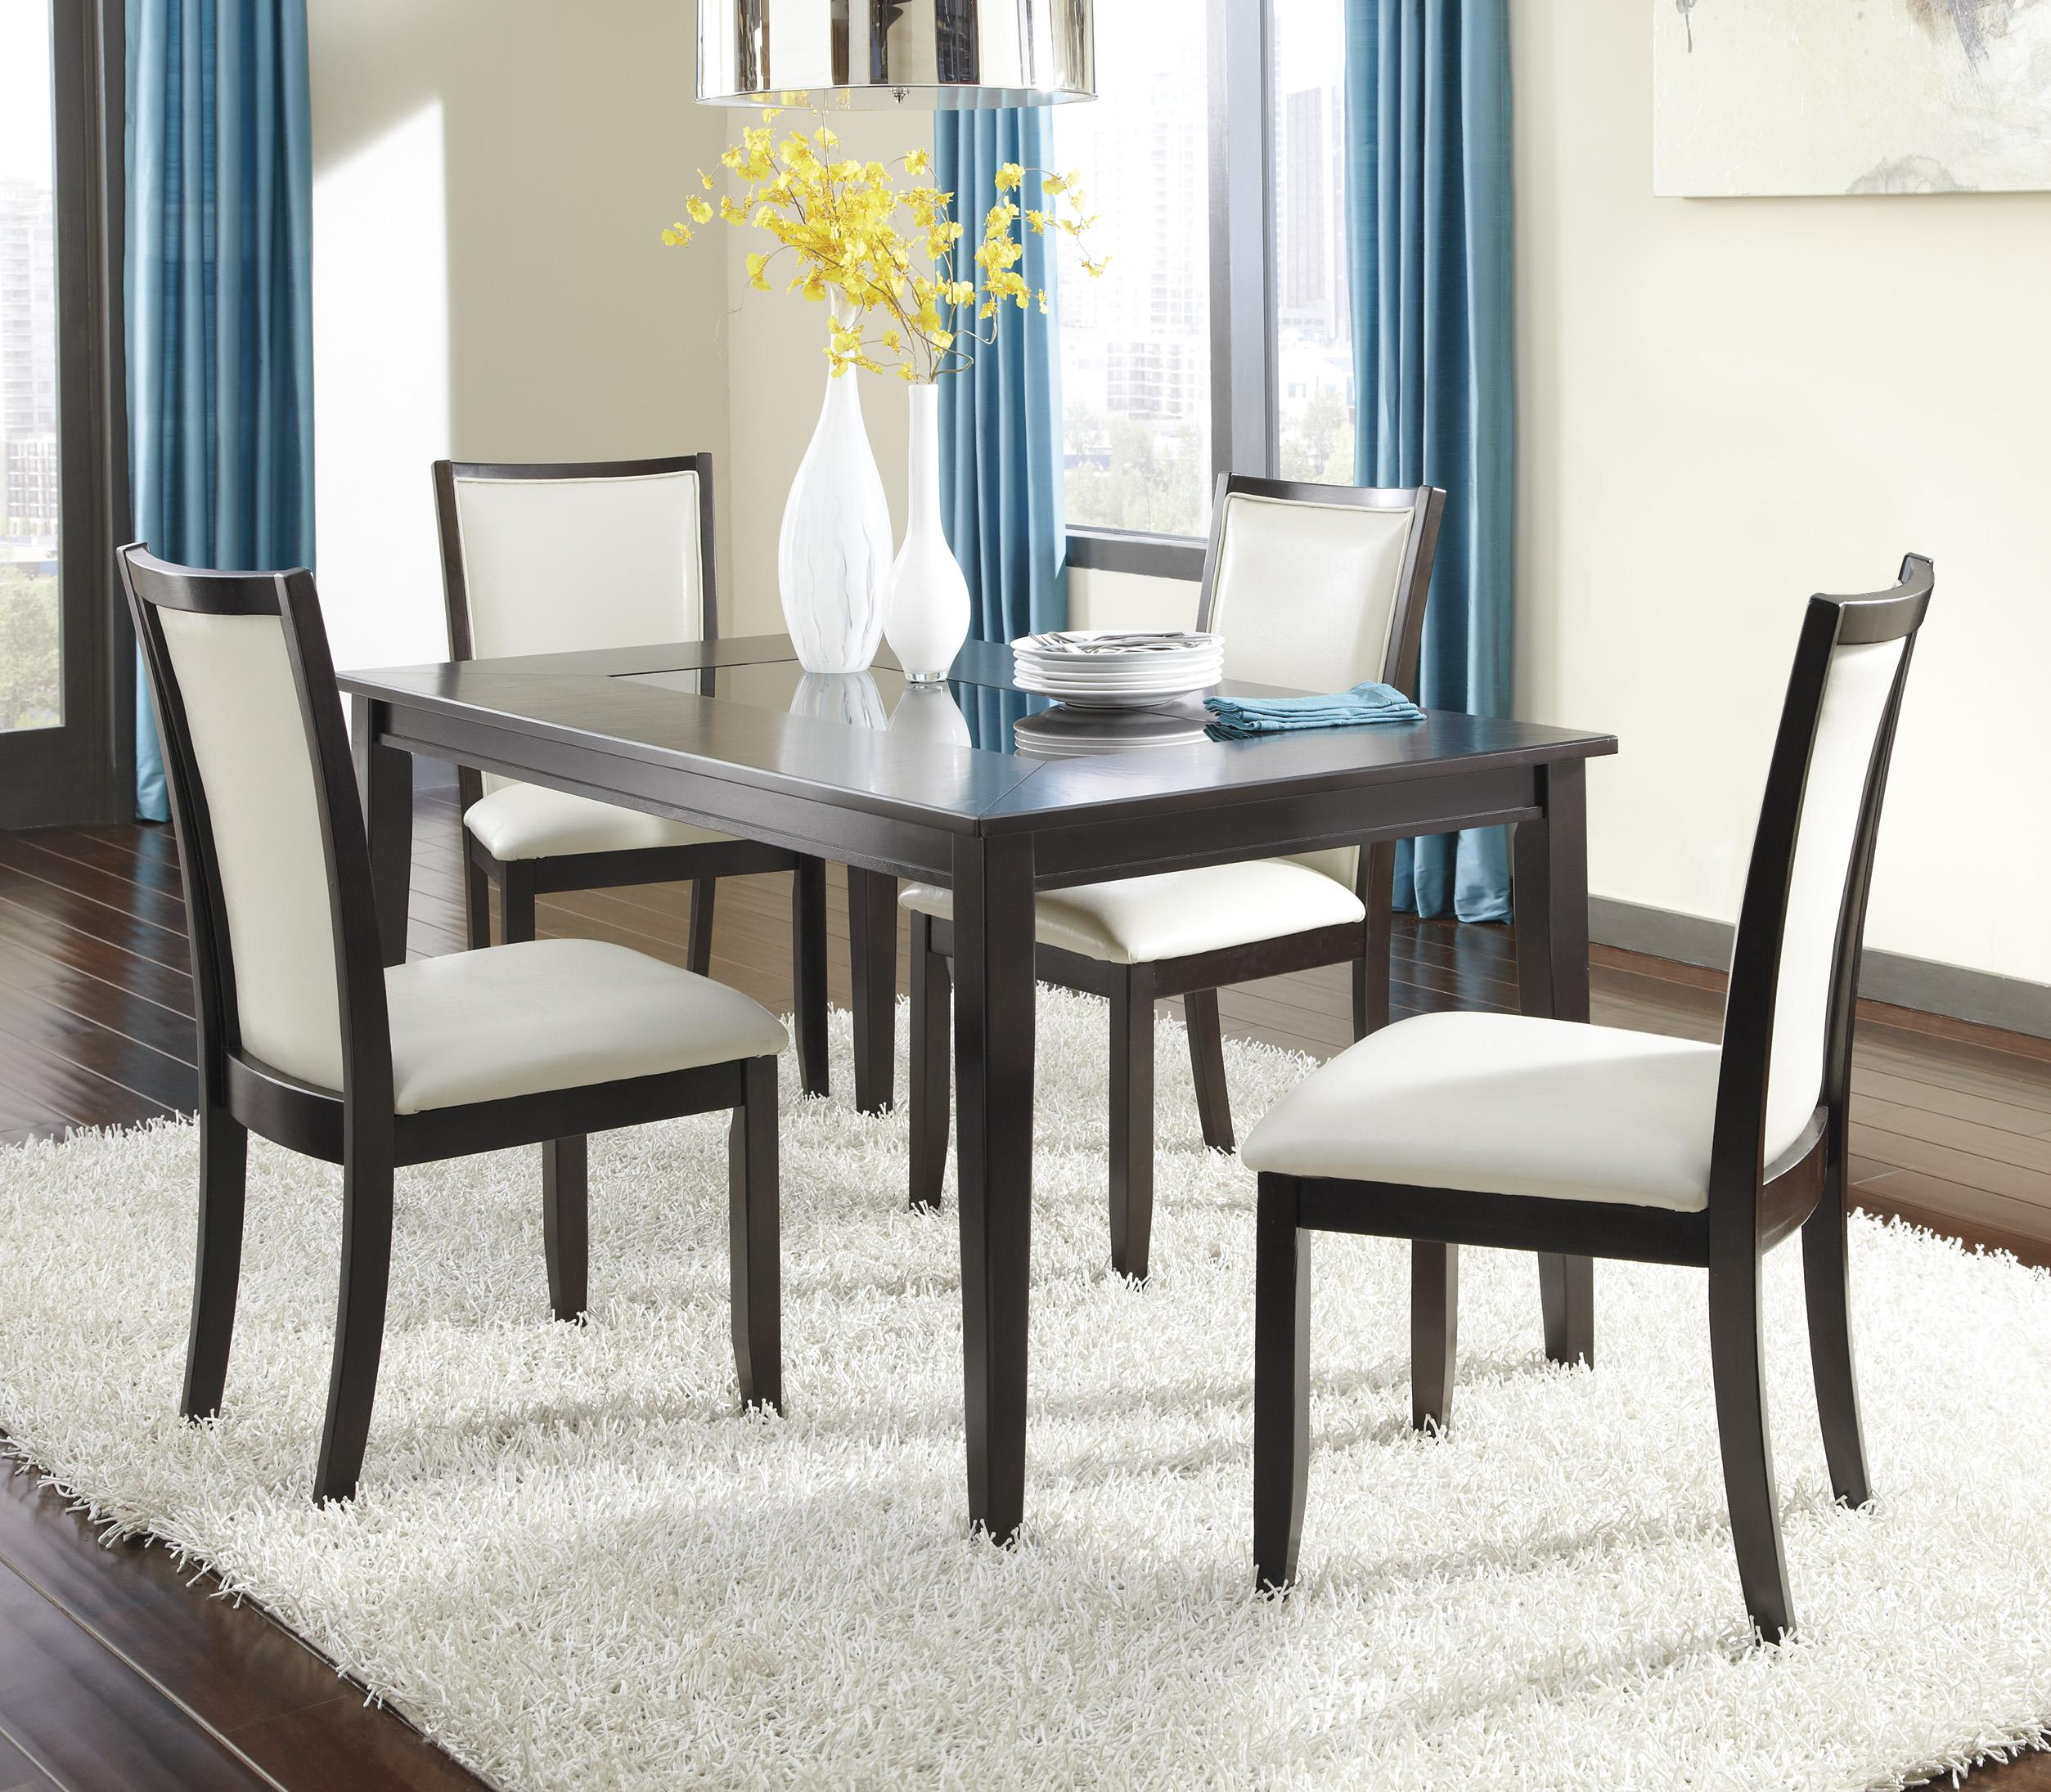 Ashley Furniture Trishelle 5-Piece Rectangular Dining Table Set - Item Number: D550-25+4x03